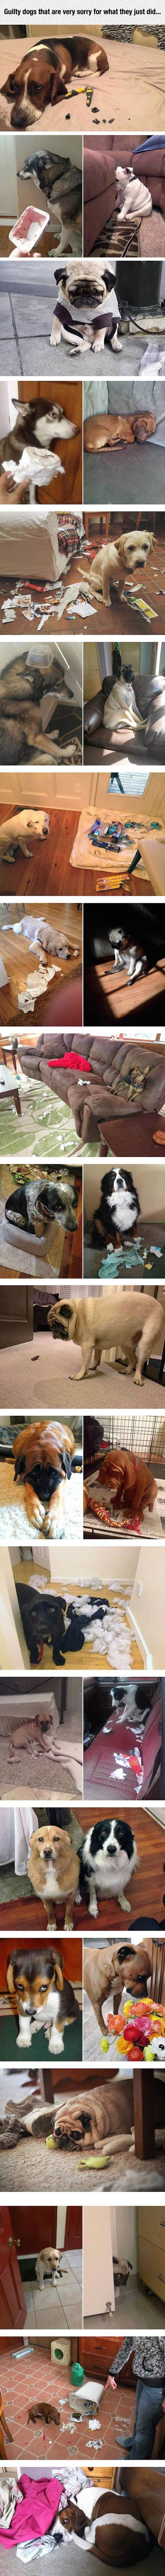 Guilty Dogs Who Are Sorry For What They Did cute animals dogs adorable dog puppy animal pets lol humor funny pictures funny animals funny pets funny dogs